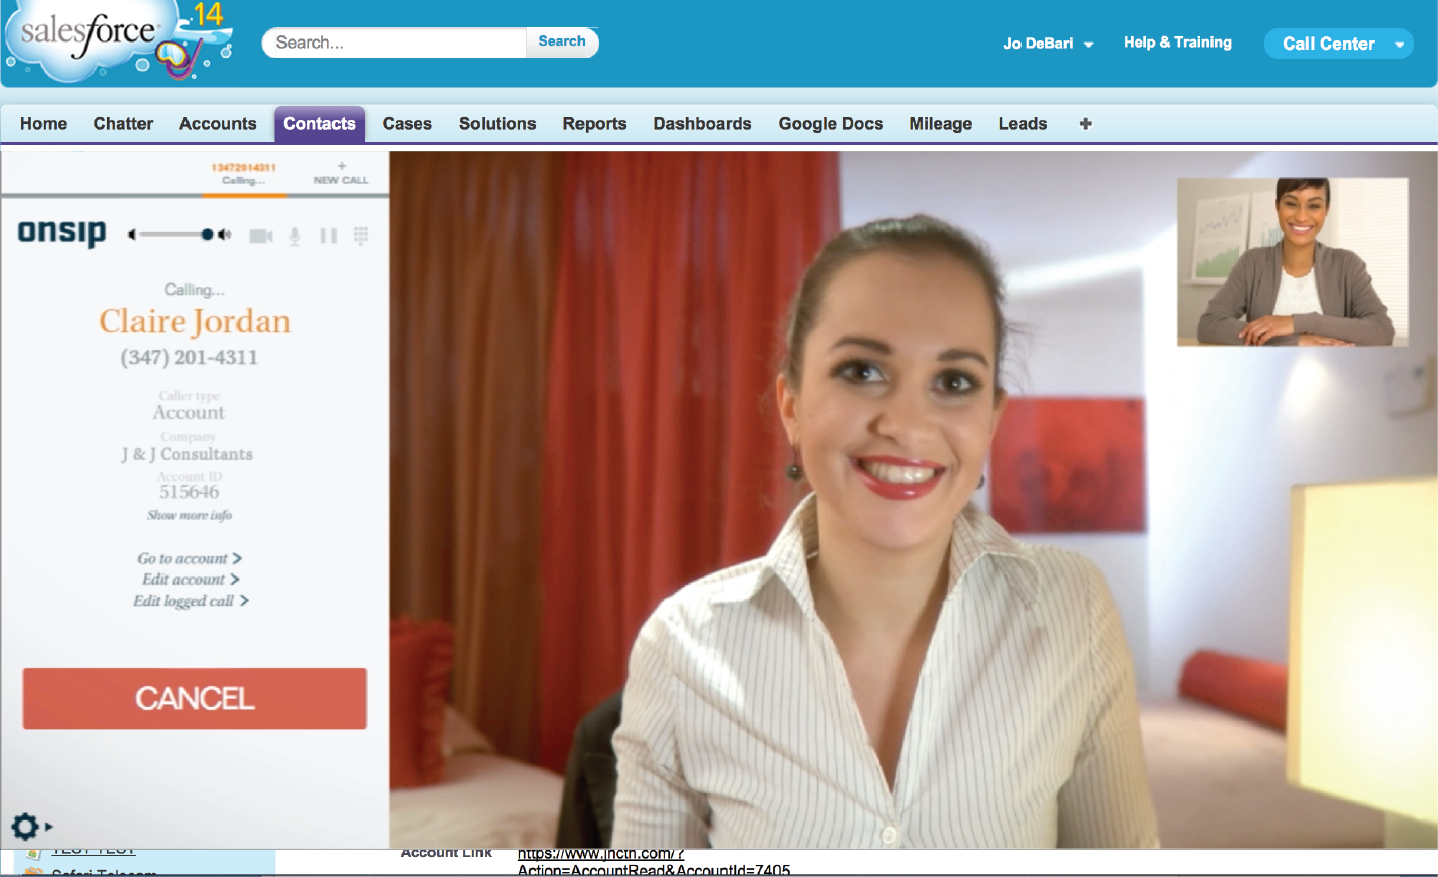 InstaPhone in Salesforce Brings Instant Video Calls and Advanced CRM To World's Leading Customer Service Platform